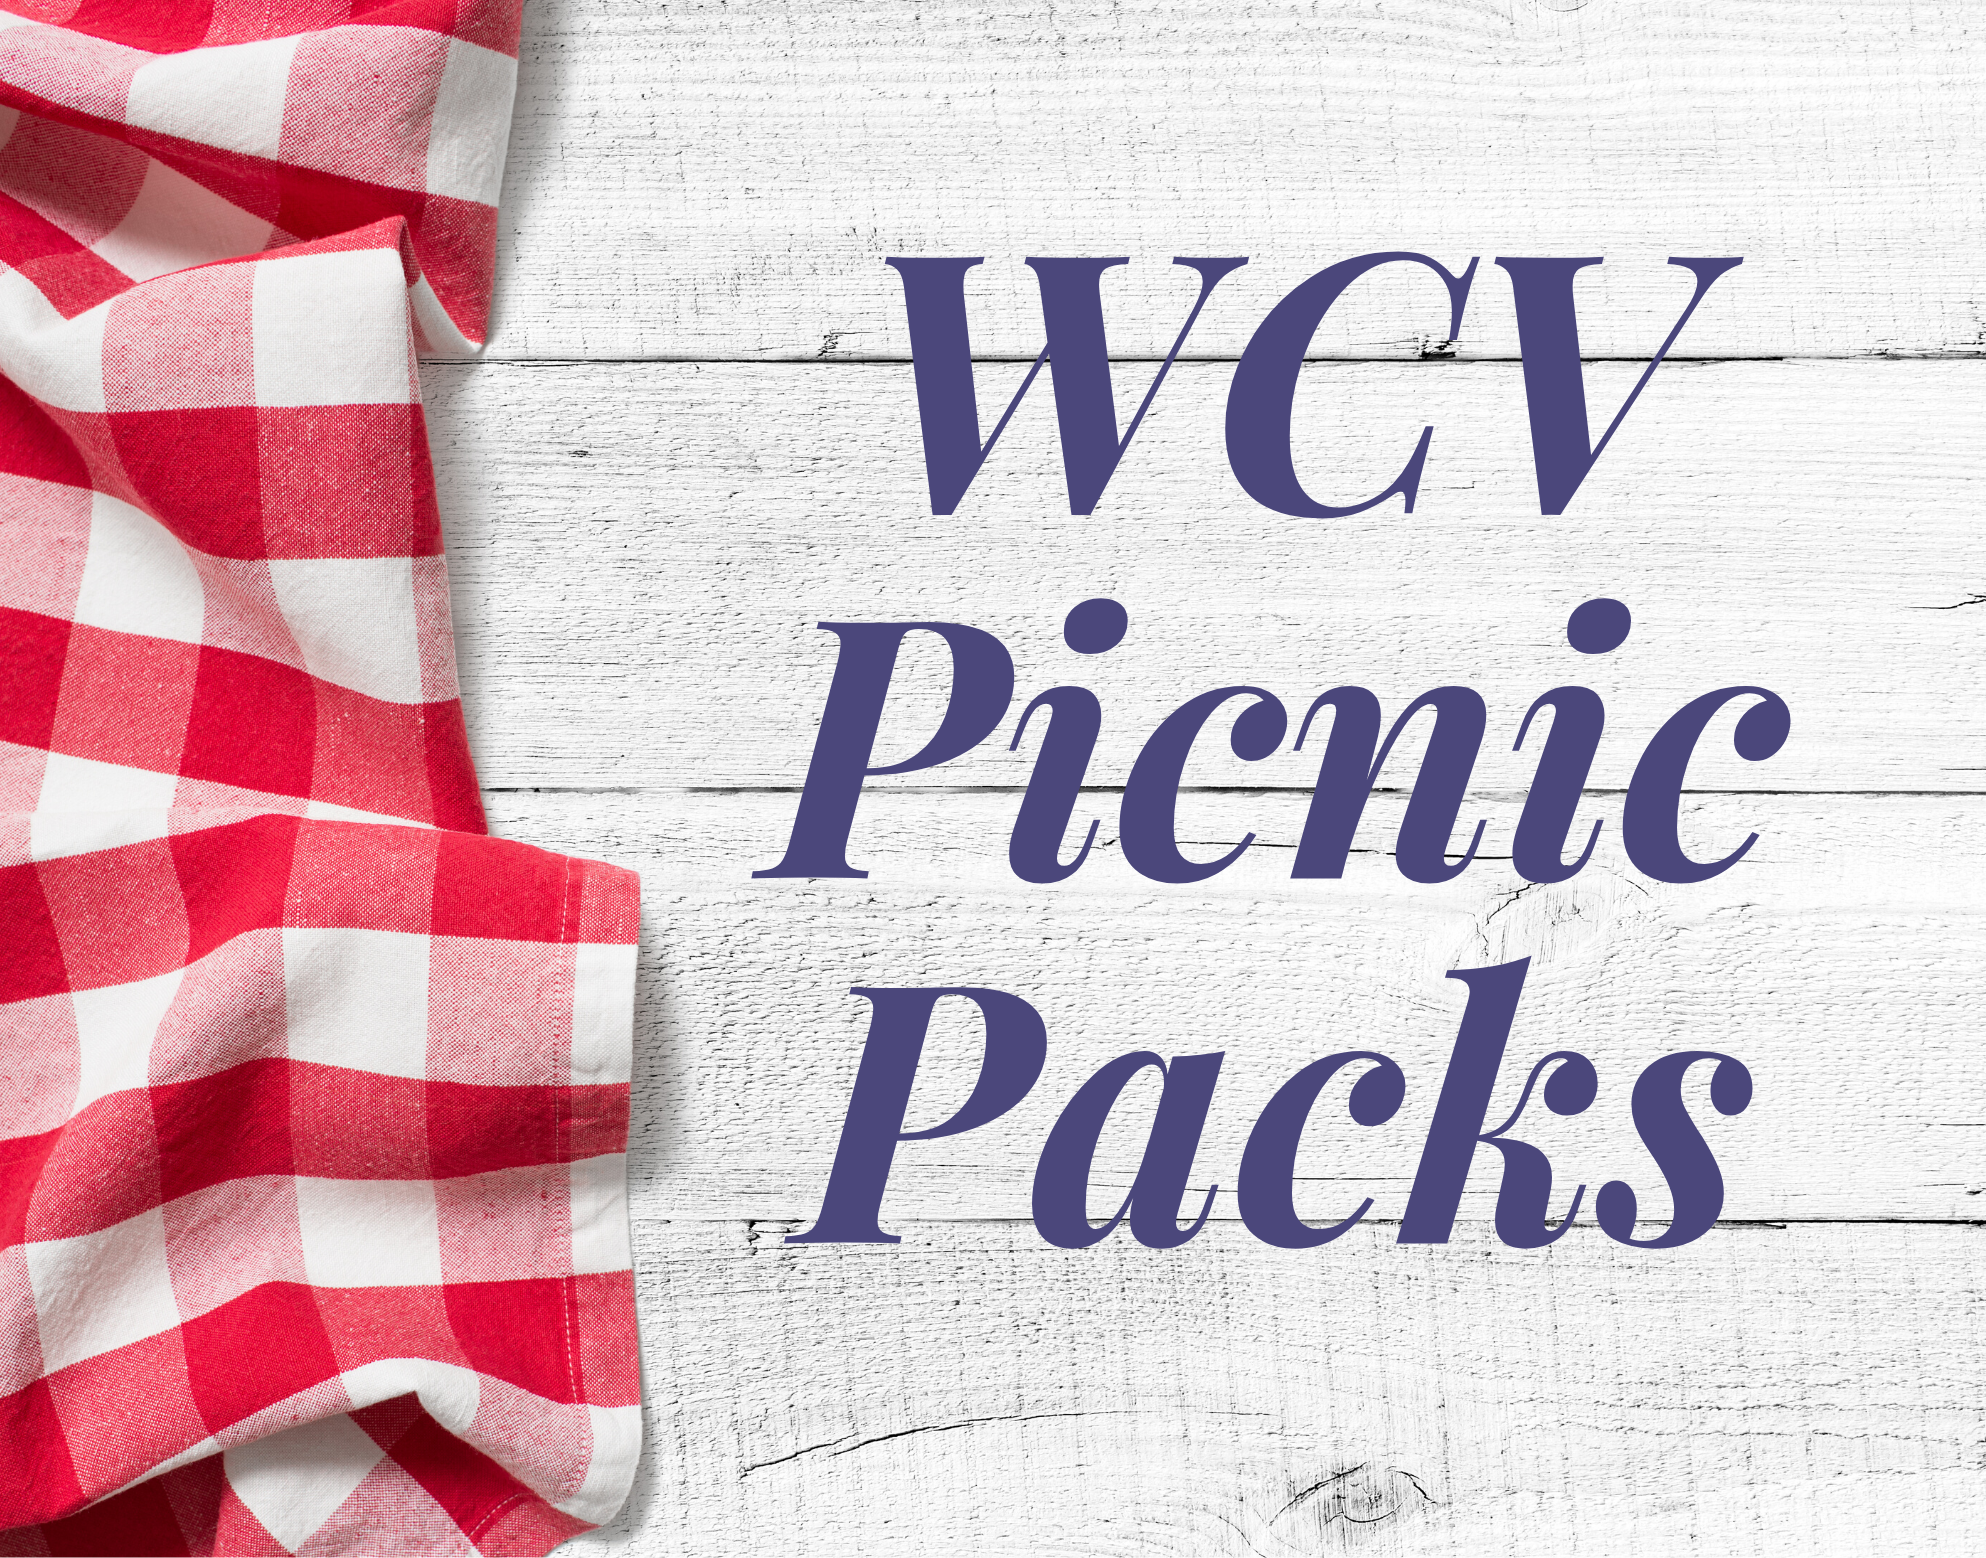 WCV Picnic Packs (1)